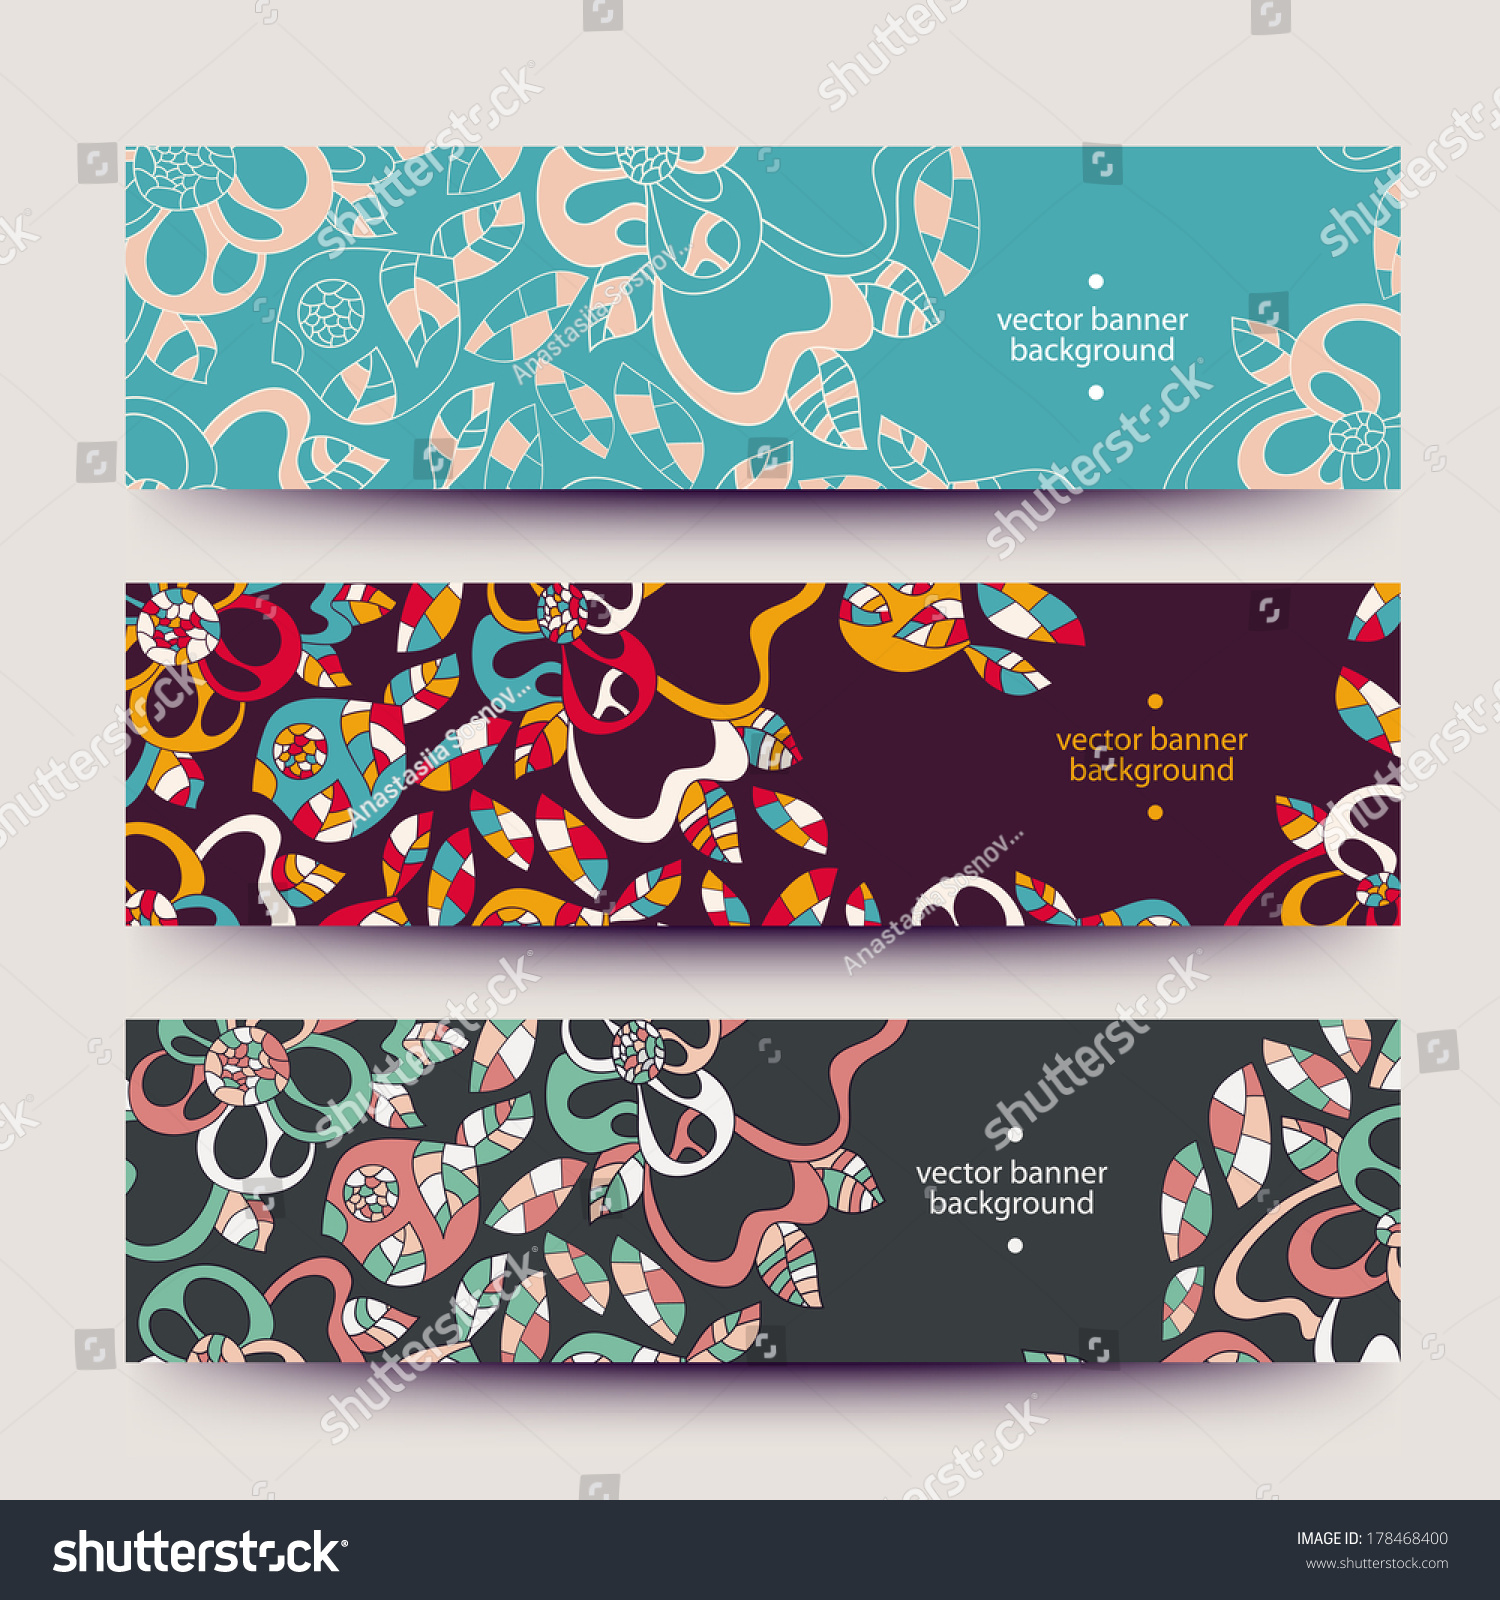 Business card labels gallery free business cards banners business cards labels tags unique stock vector 178468400 banners for business cards labels tags unique magicingreecefo Images